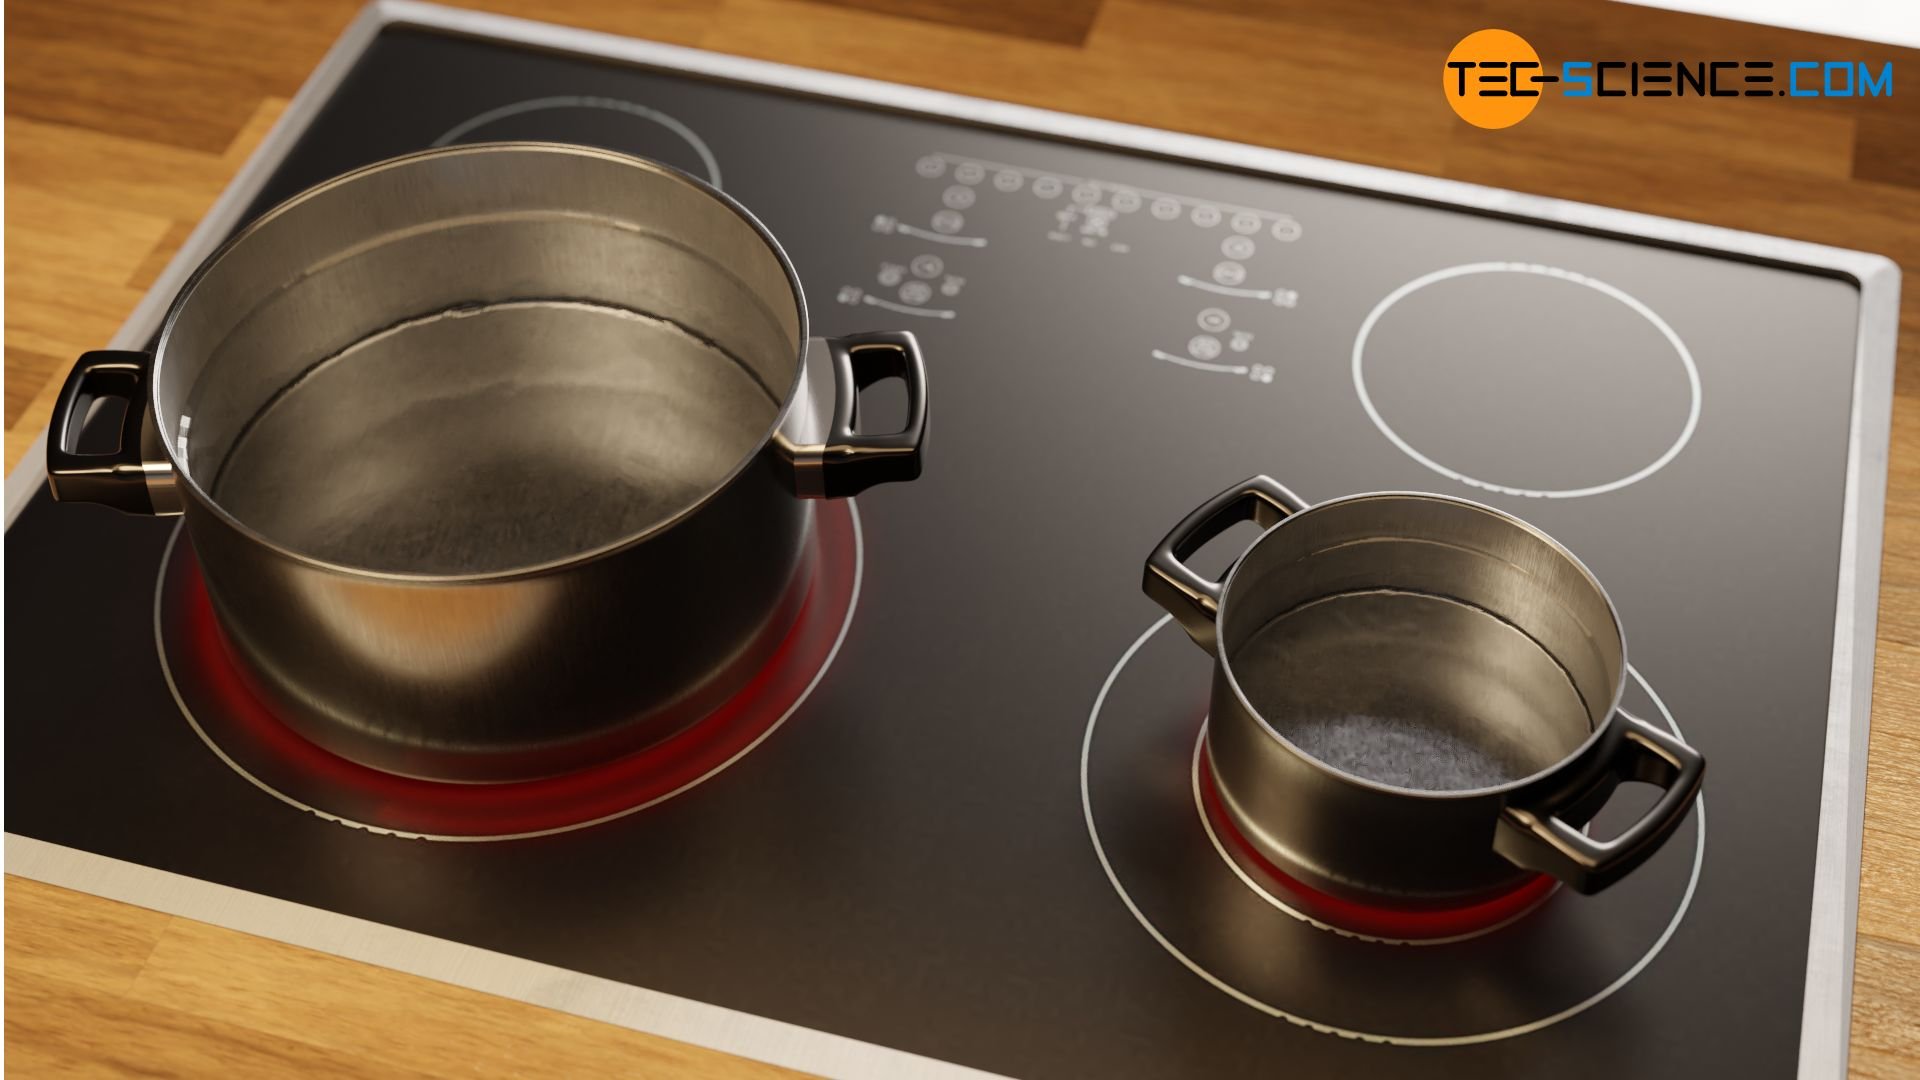 Heating of different amounts of water on a hotplate